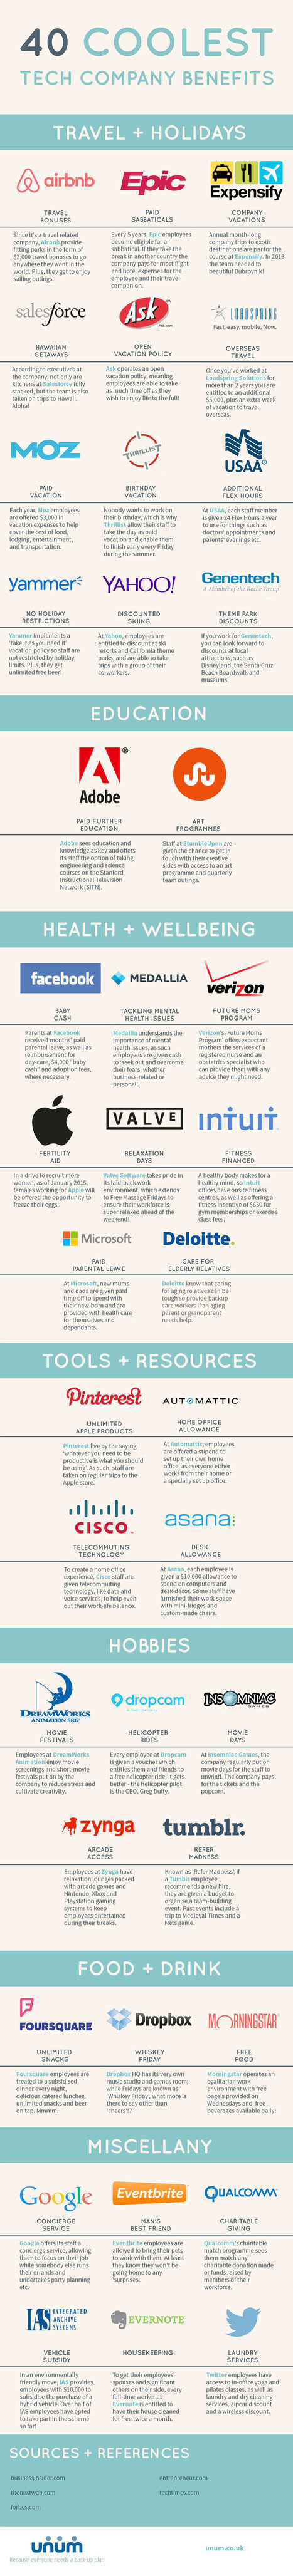 The 40 coolest tech company benefits [Infographic] - Unum | Photography News Journal | Scoop.it